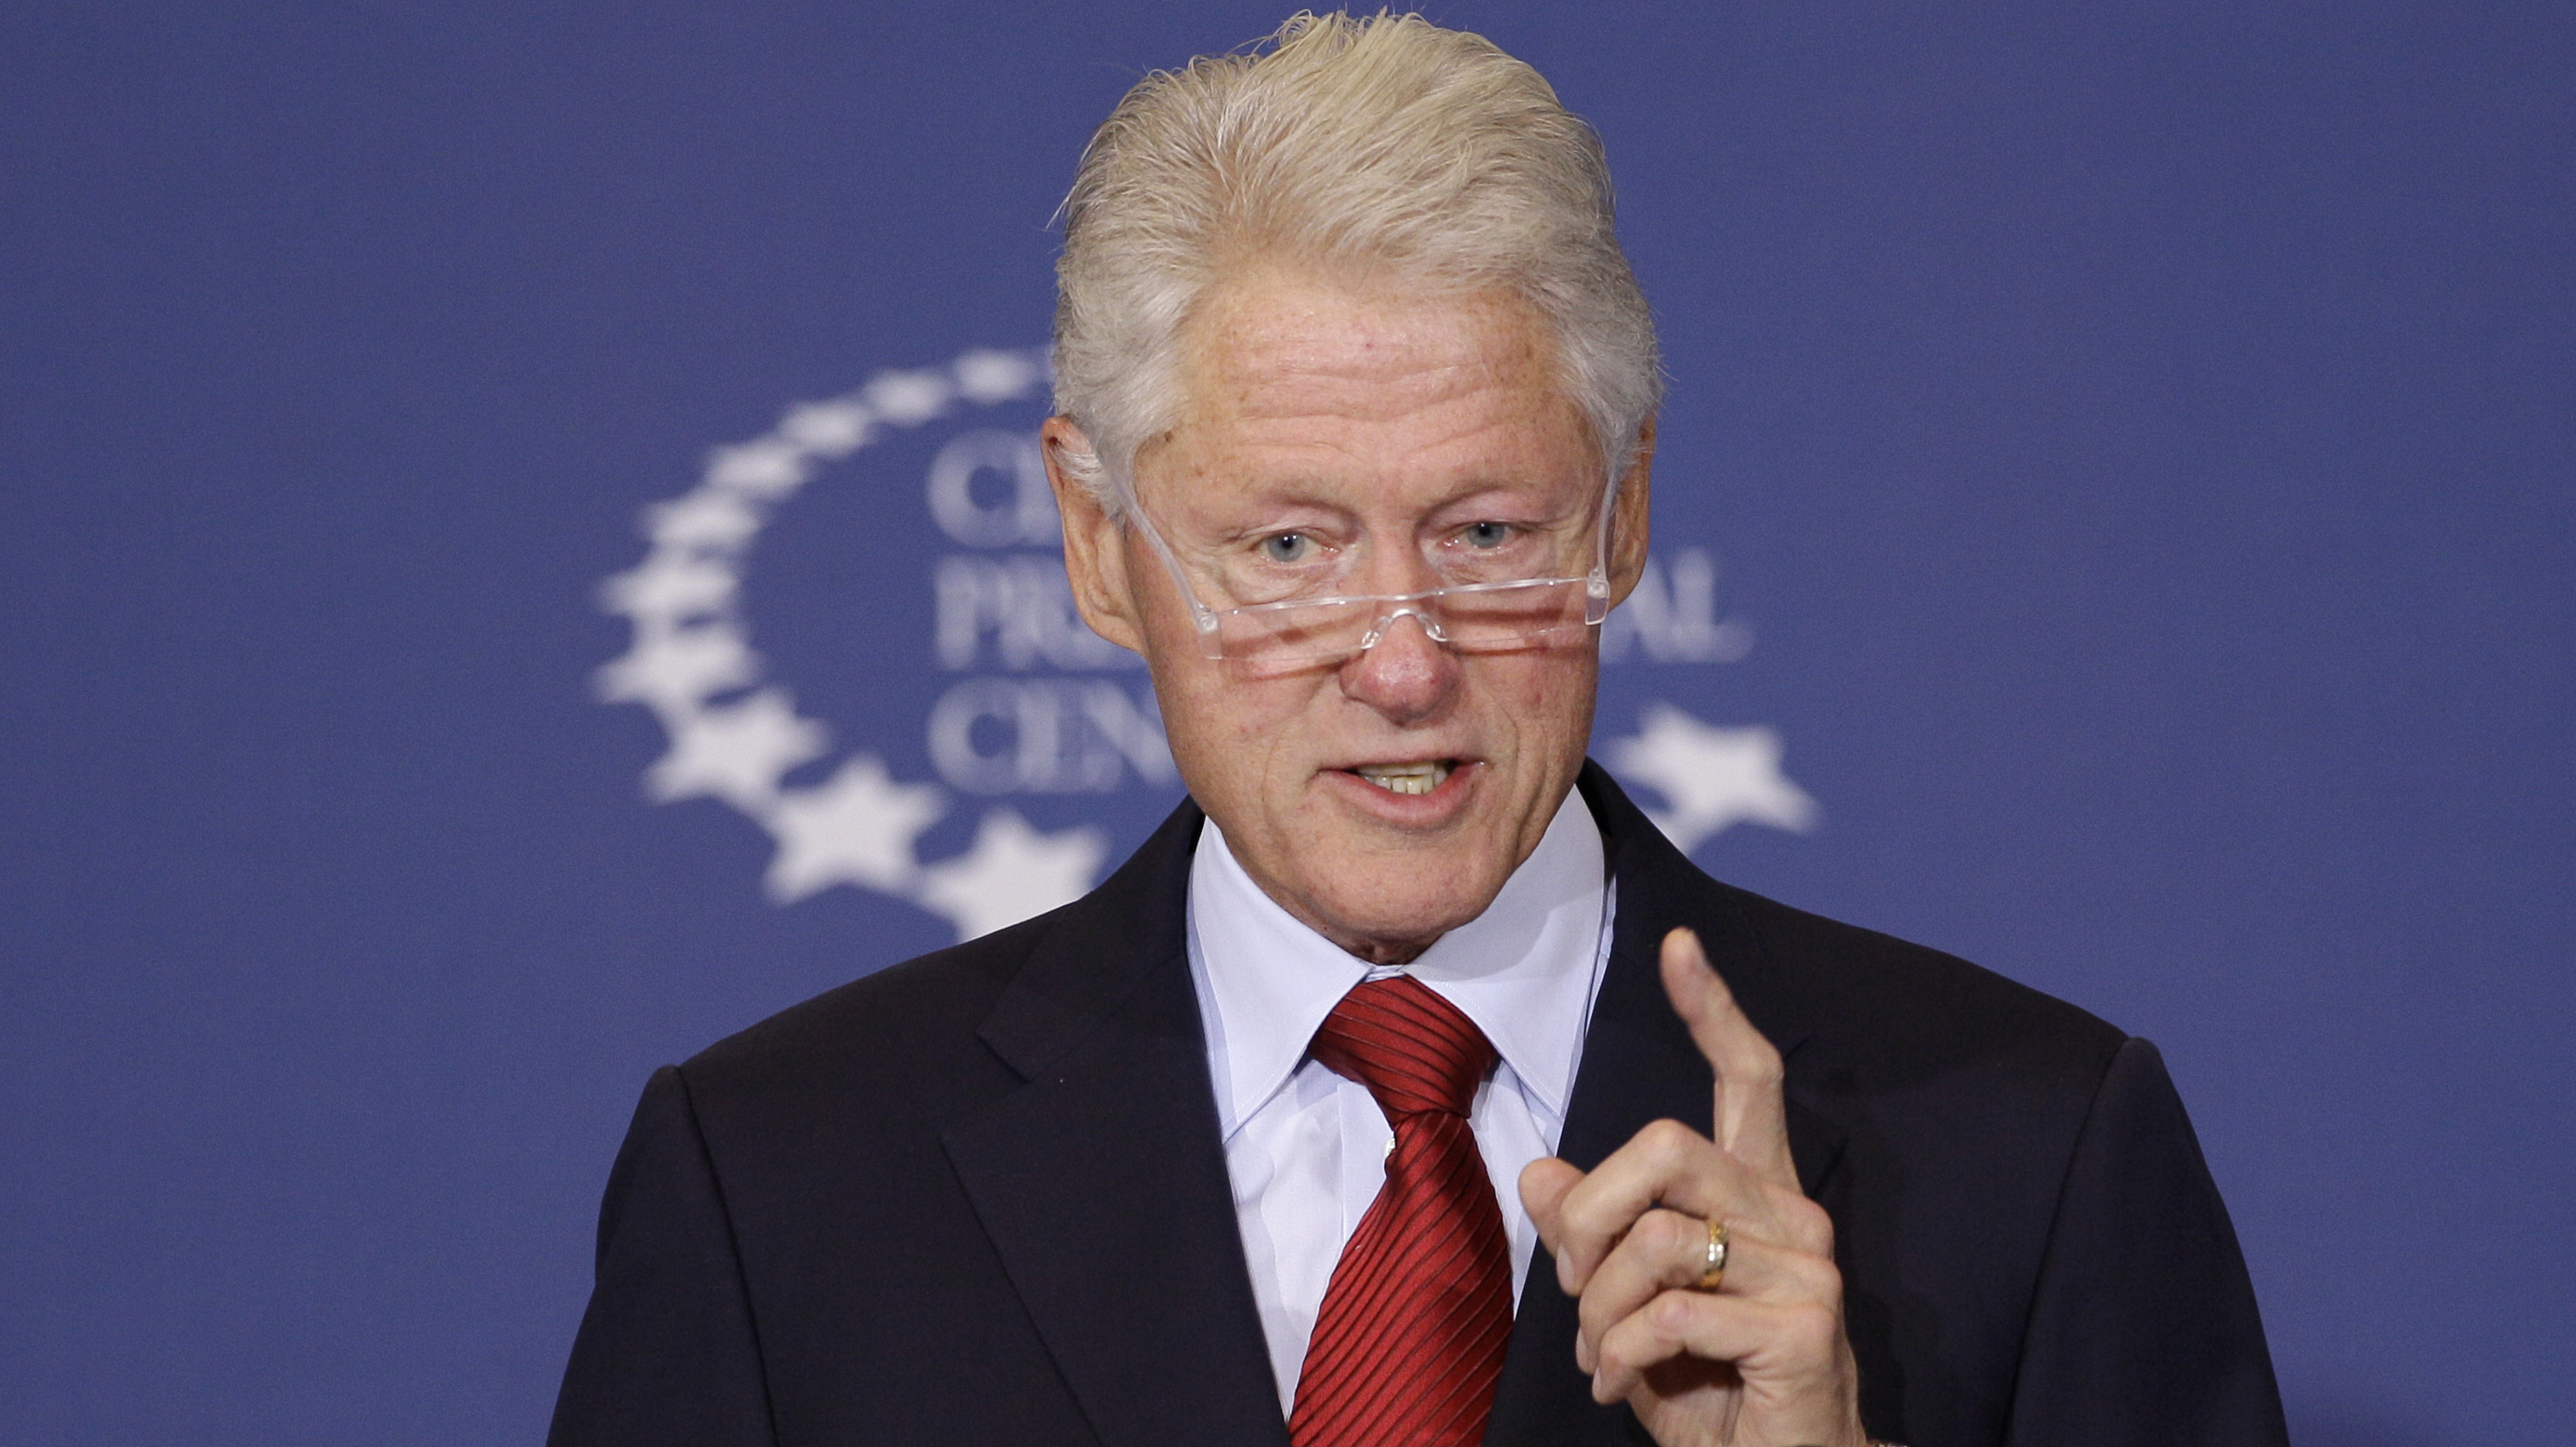 Bill Clinton Steps Up To Dispel The Confusion Over Obamacare